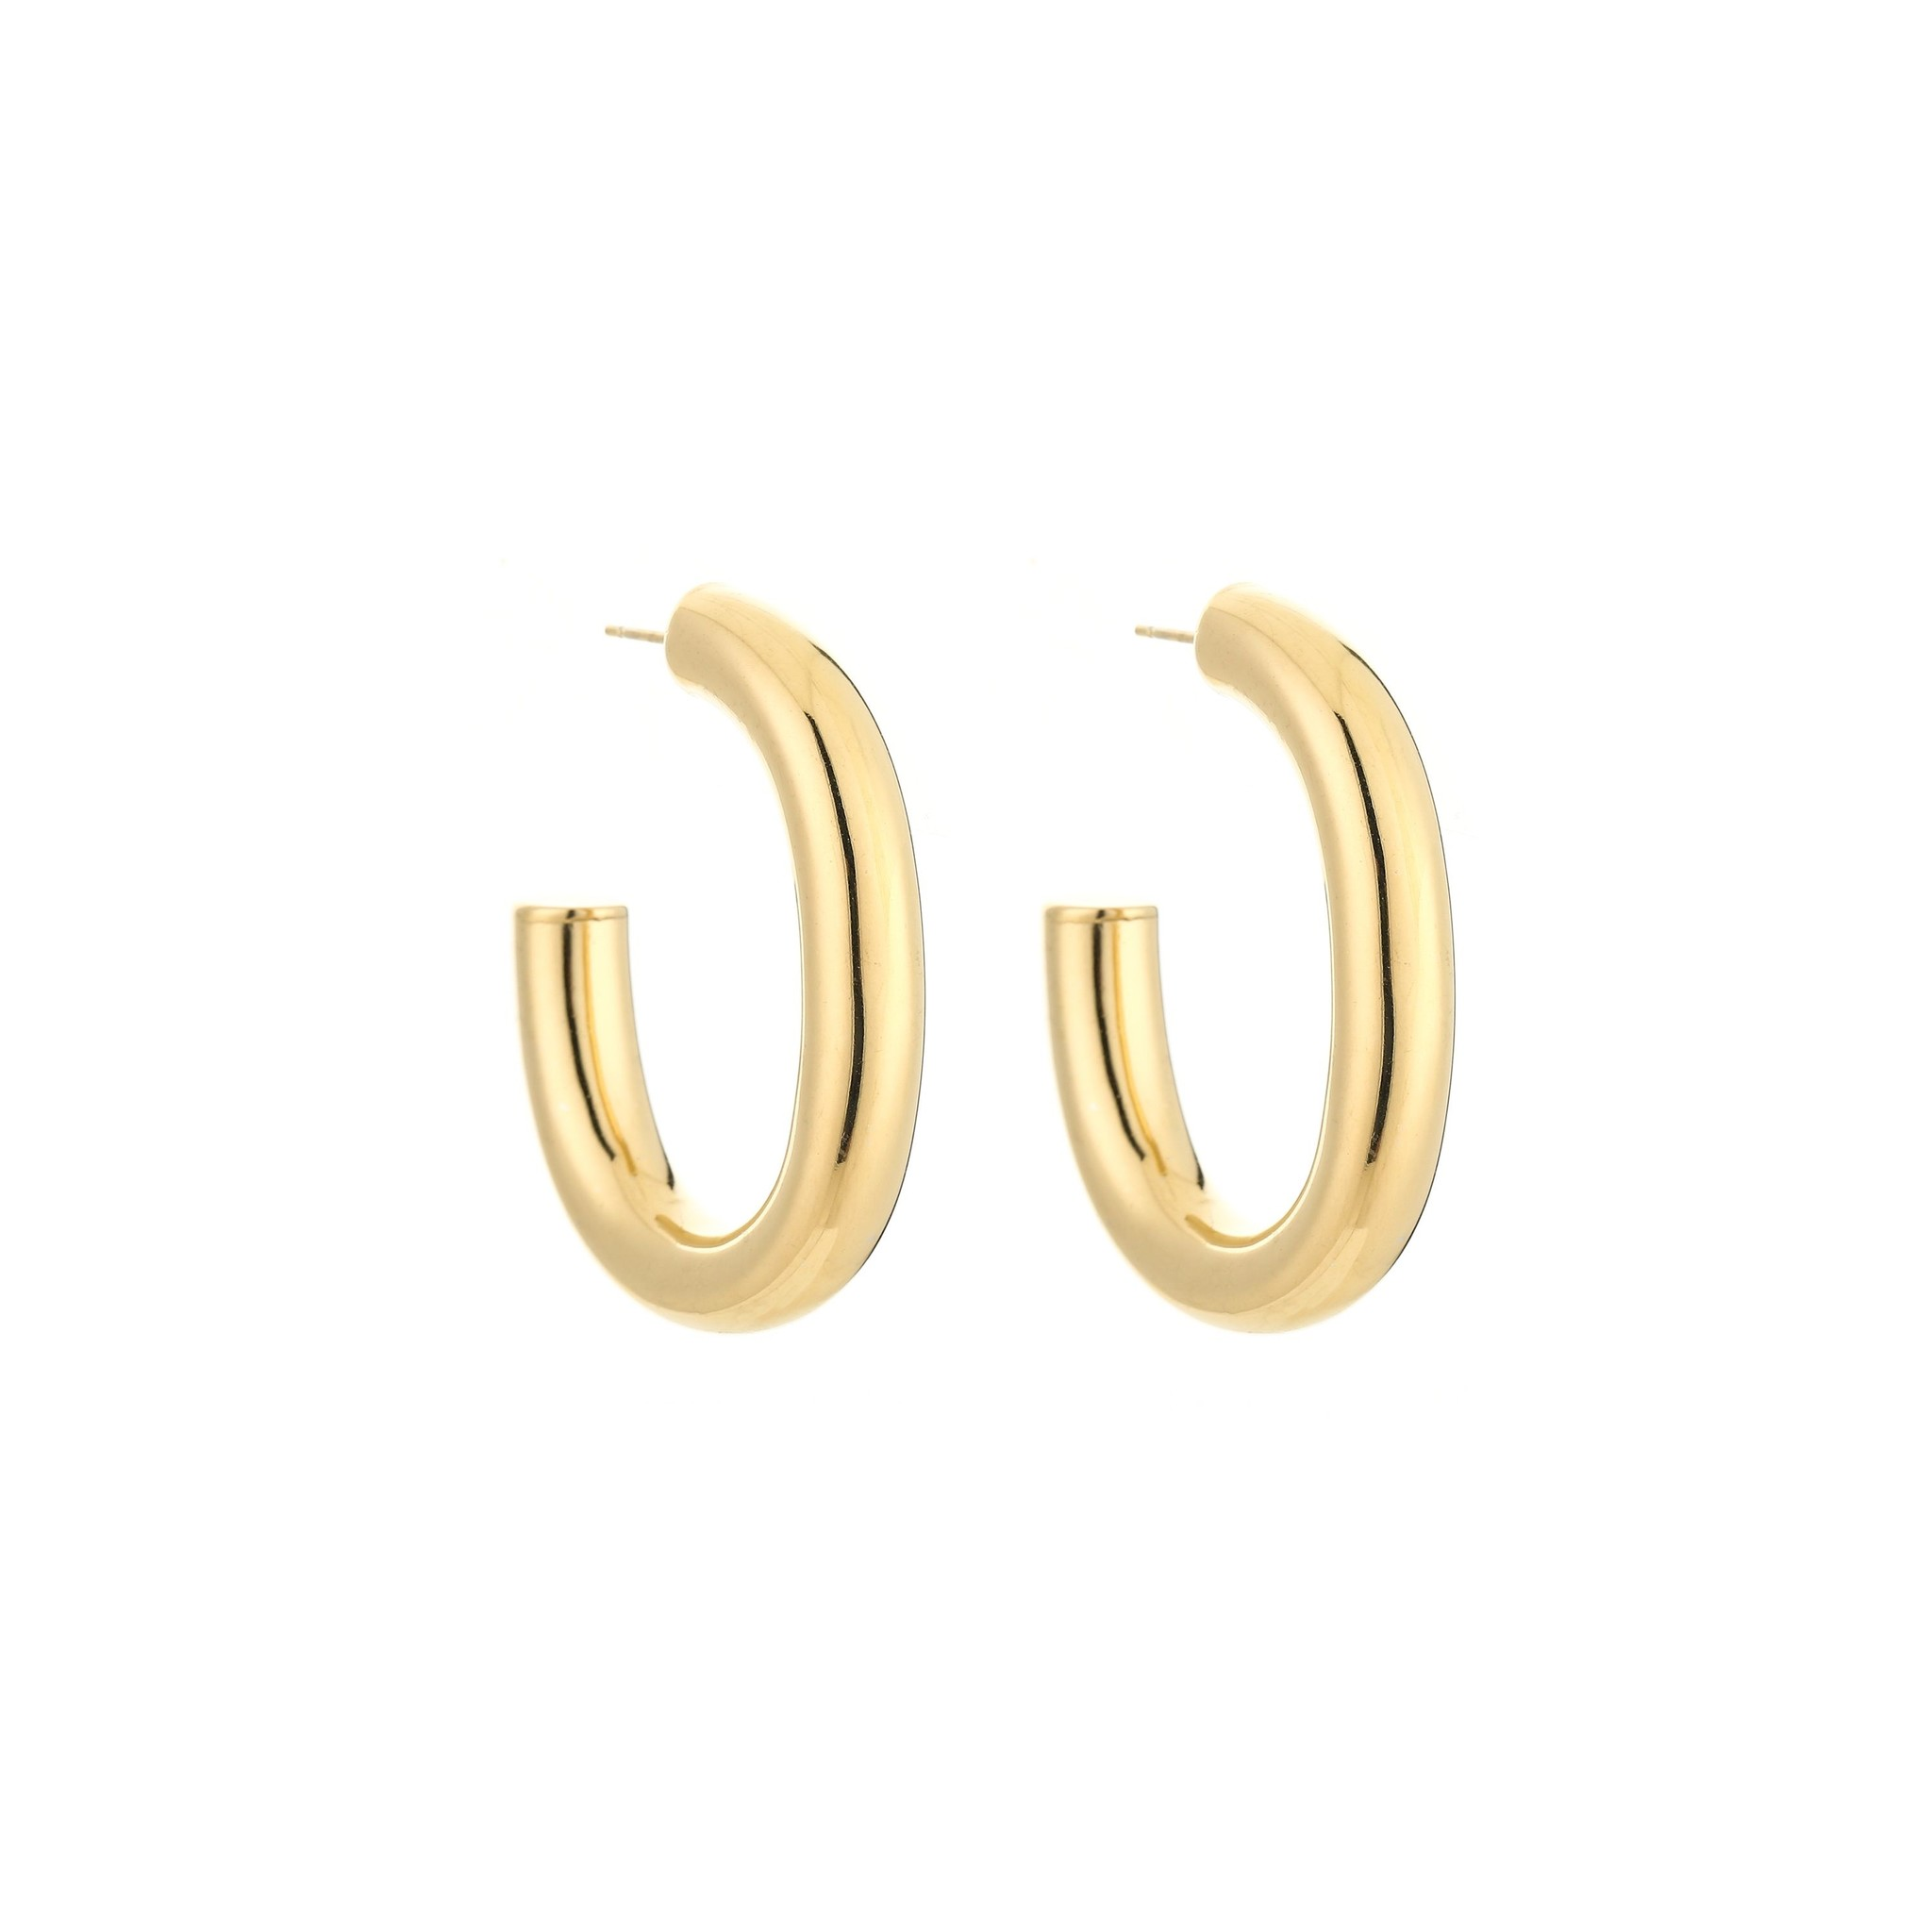 Stainless Steel Statement Earrings Small